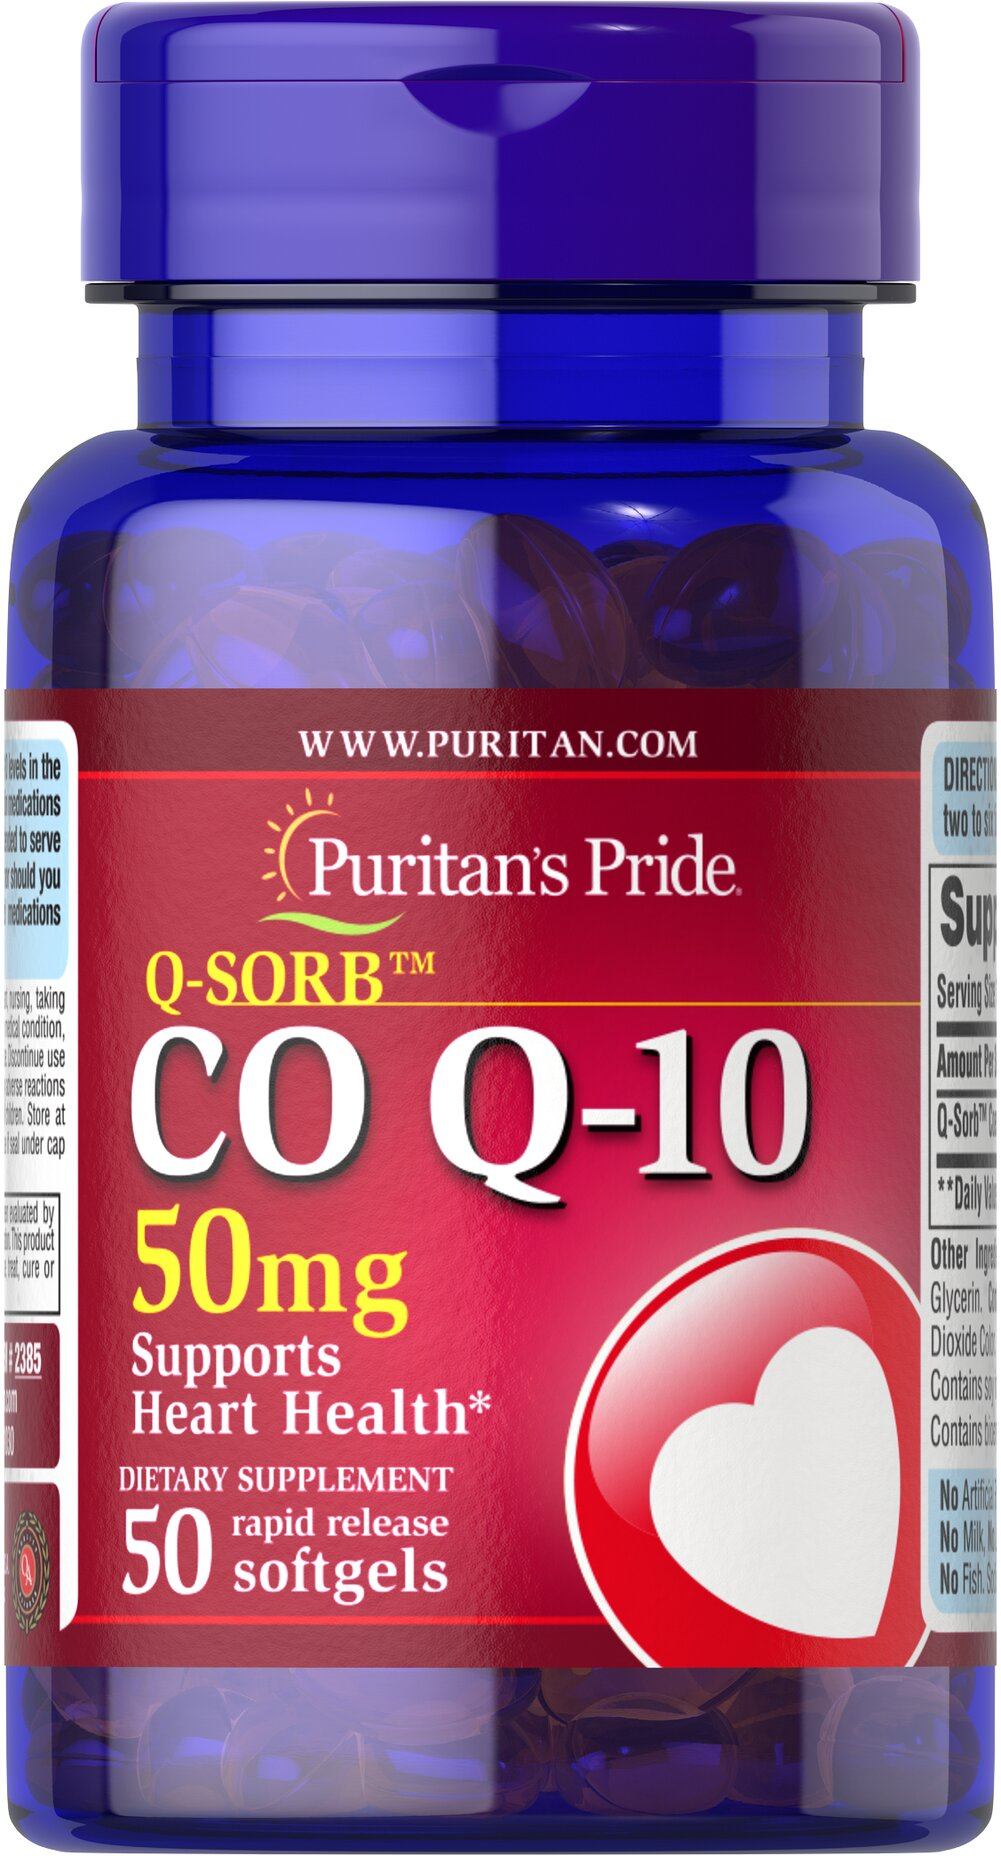 Q-SORB™ Co Q-10 50 mg <p>Puritan's Pride Q-Sorb™ Co Q-10 (coq10) provides antioxidant support for your heart and ensures potency and purity.**</p><p>Our Q-Sorb™ Co Q-10 is hermetically sealed in rapid release softgels to provide superior absorption</p><p>Contributes to your heart and cardiovascular wellness**</p><p>Helps support blood pressure levels already within a normal range**</p><p>Promotes energy production within your heart, brain, an